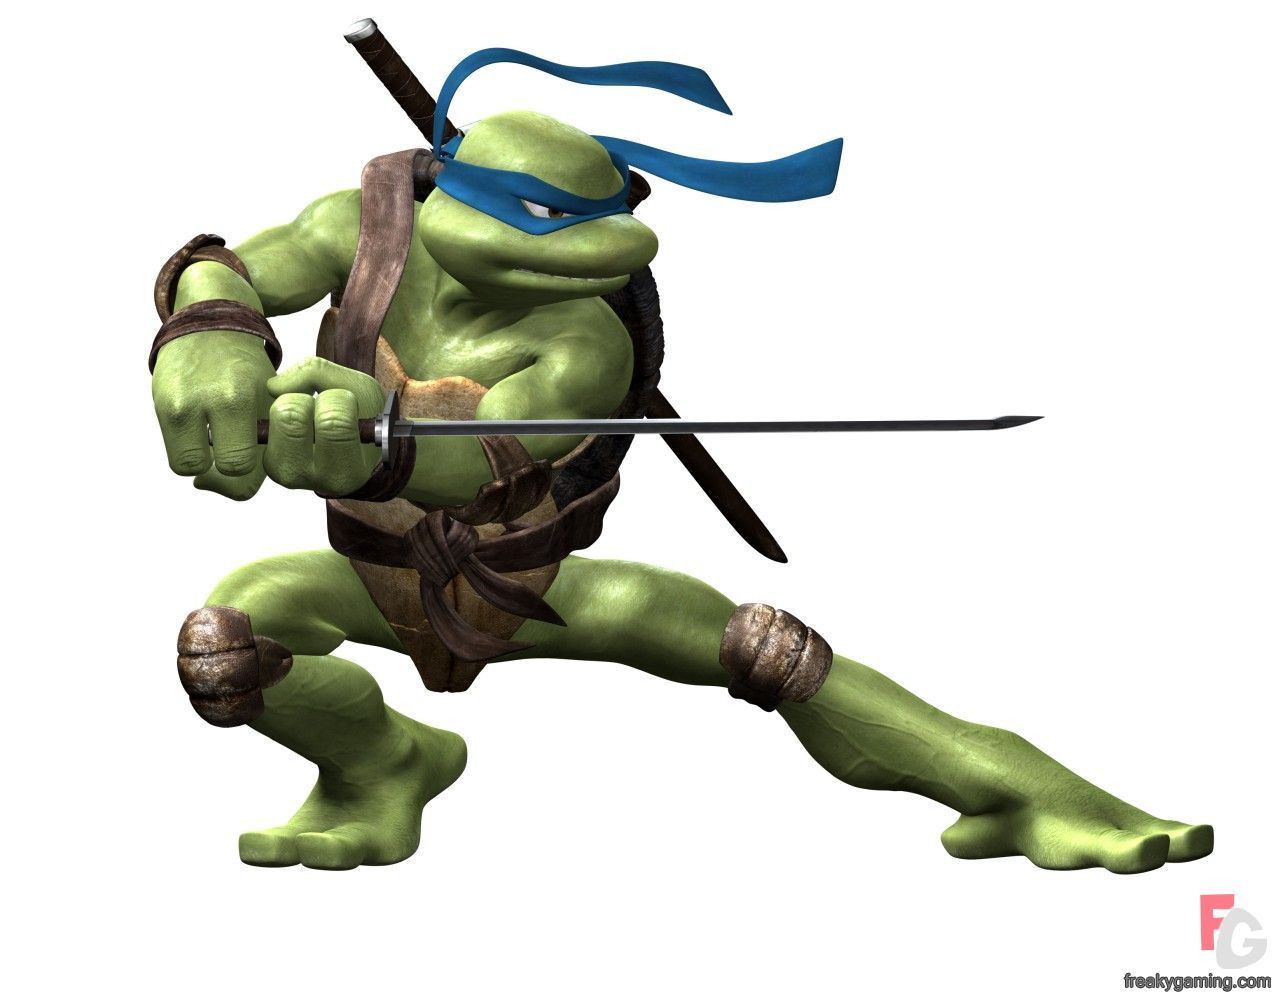 Tmnt Leonardo Sword Pose Art Gallery At Freakygaming Leonardo Tmnt Tmnt Tmnt 2012